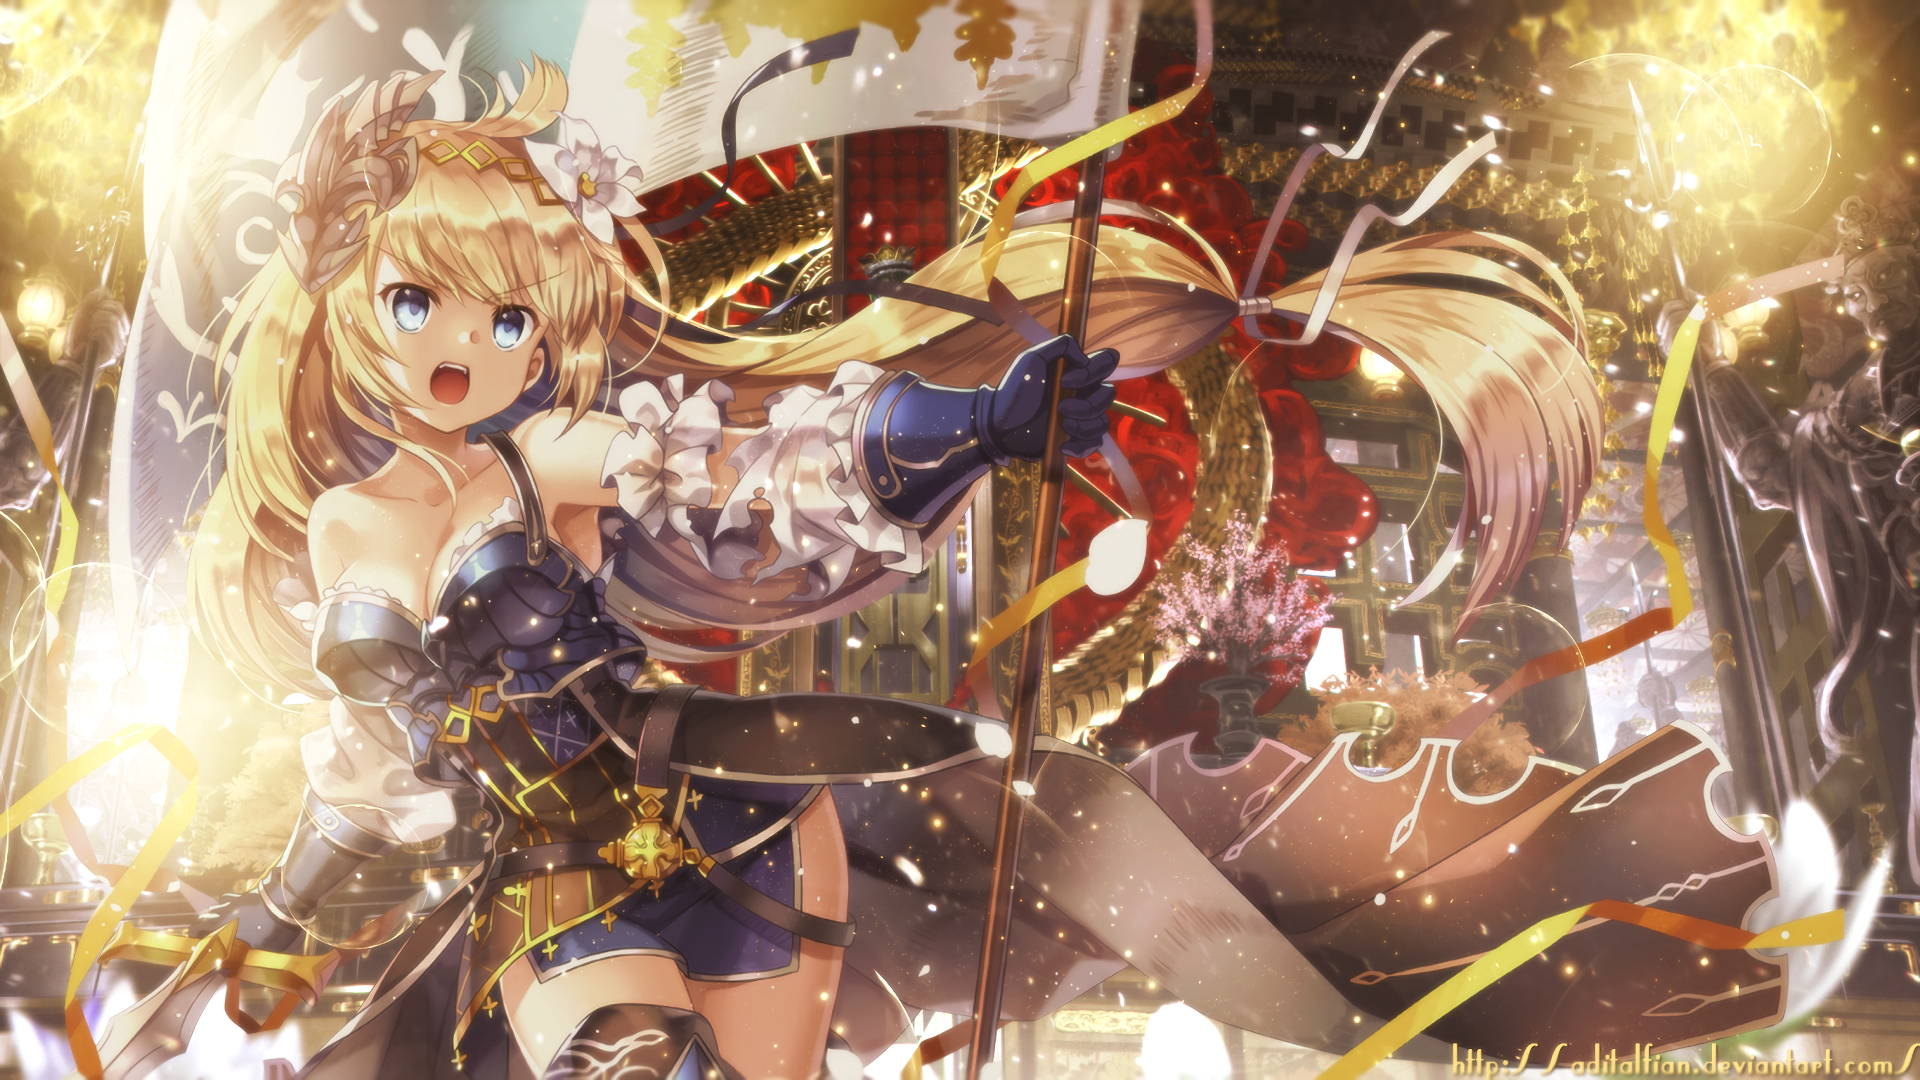 Anime Granblue Fantasy Wallpaper Granblue Fantasy Pinterest